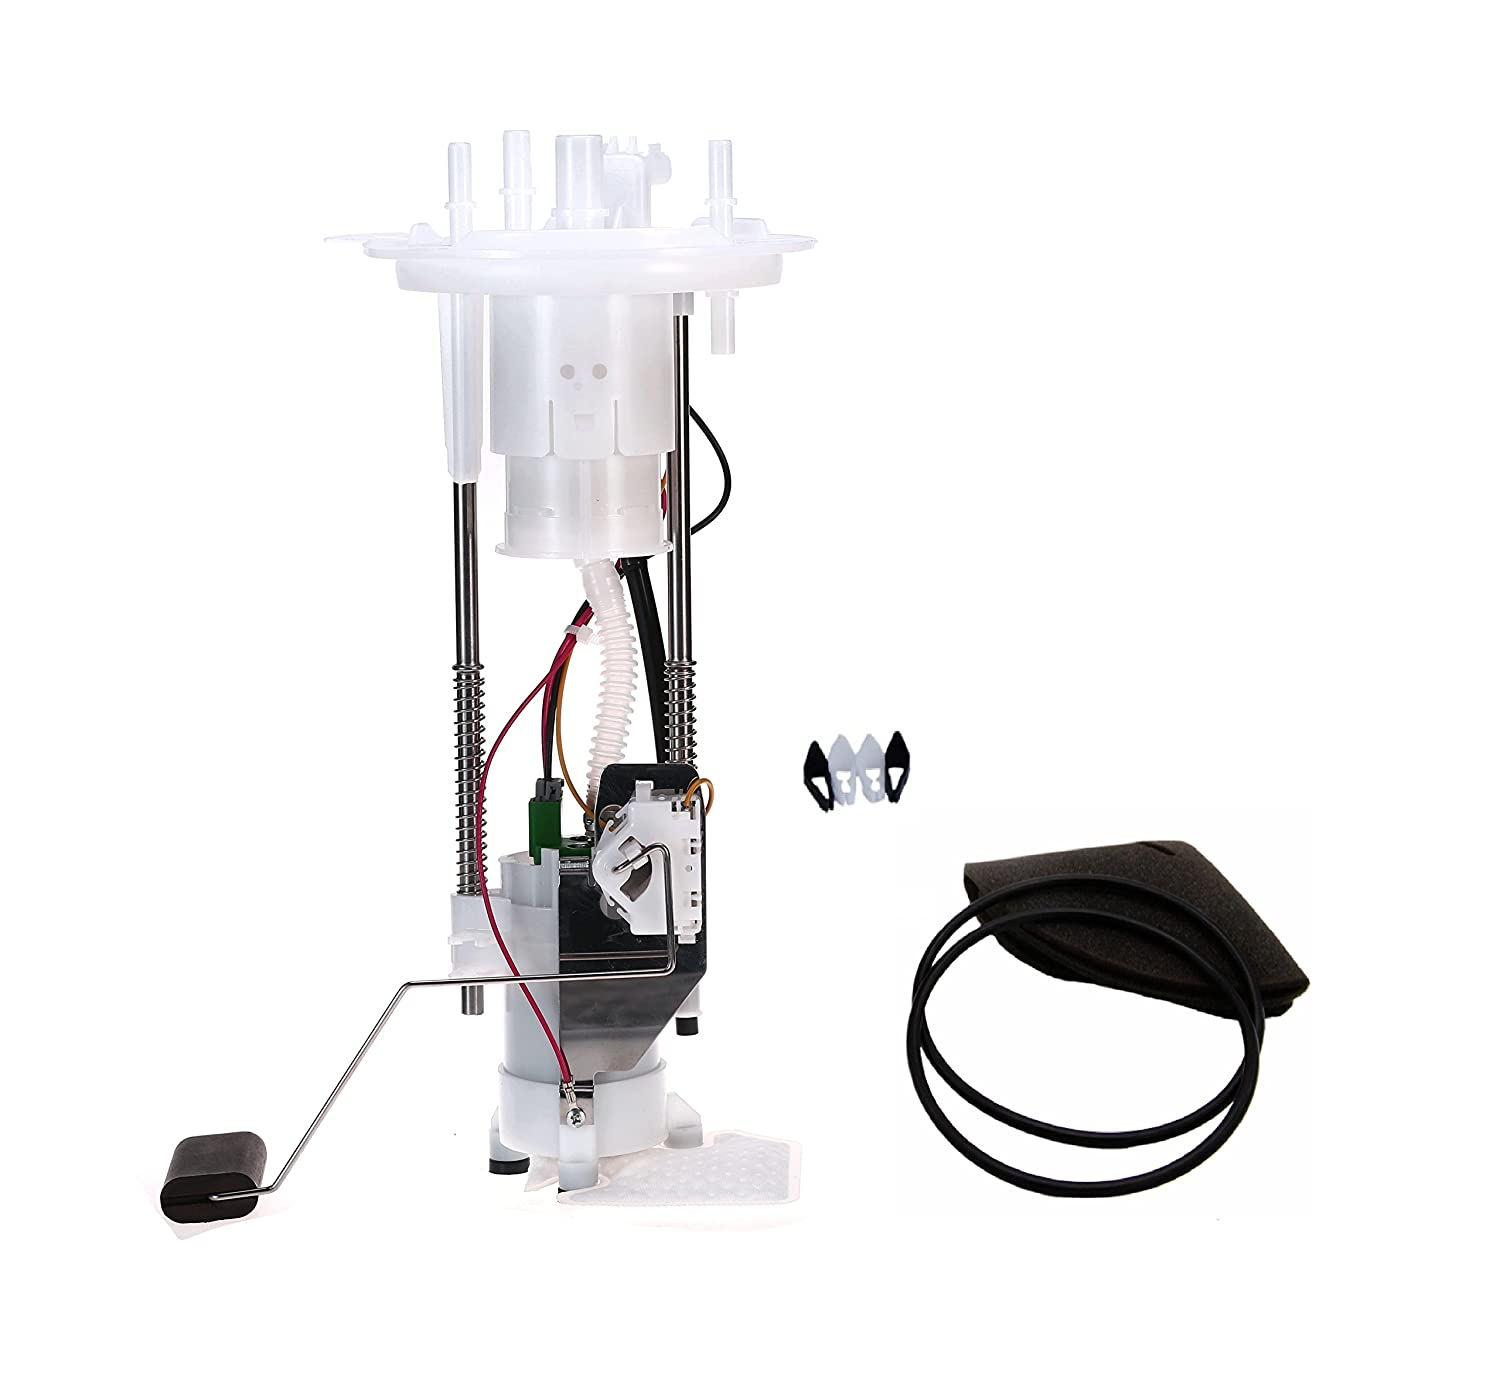 Topscope Fp2436m Fuel Pump Module Assembly E2436m Fits 2007 Lincoln Mark Lt Filter Location 2004 2008 Ford F 150 54l V8 Automotive